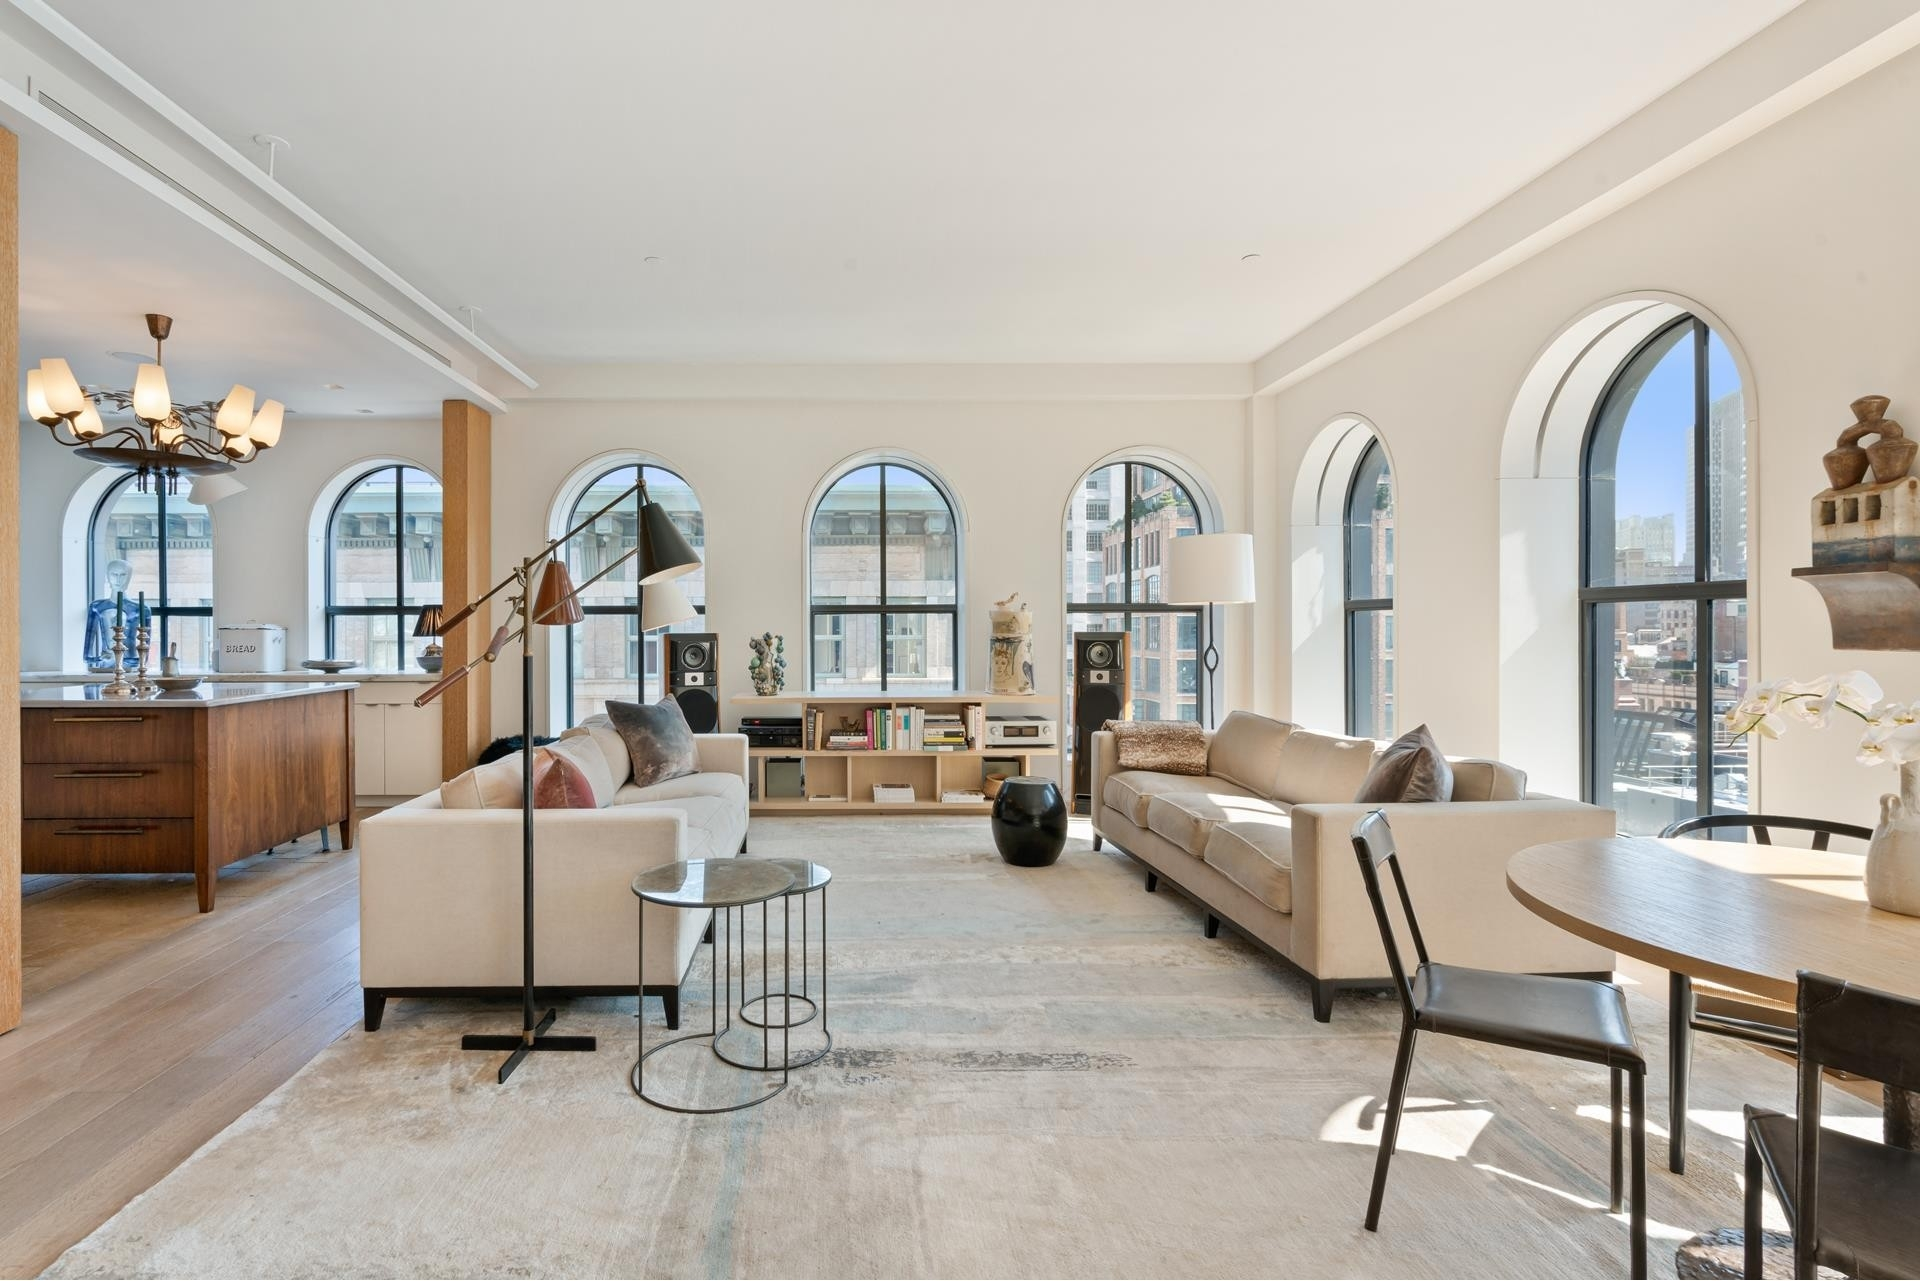 3. Condominiums for Sale at 408 GREENWICH ST , PH TriBeCa, New York, NY 10013